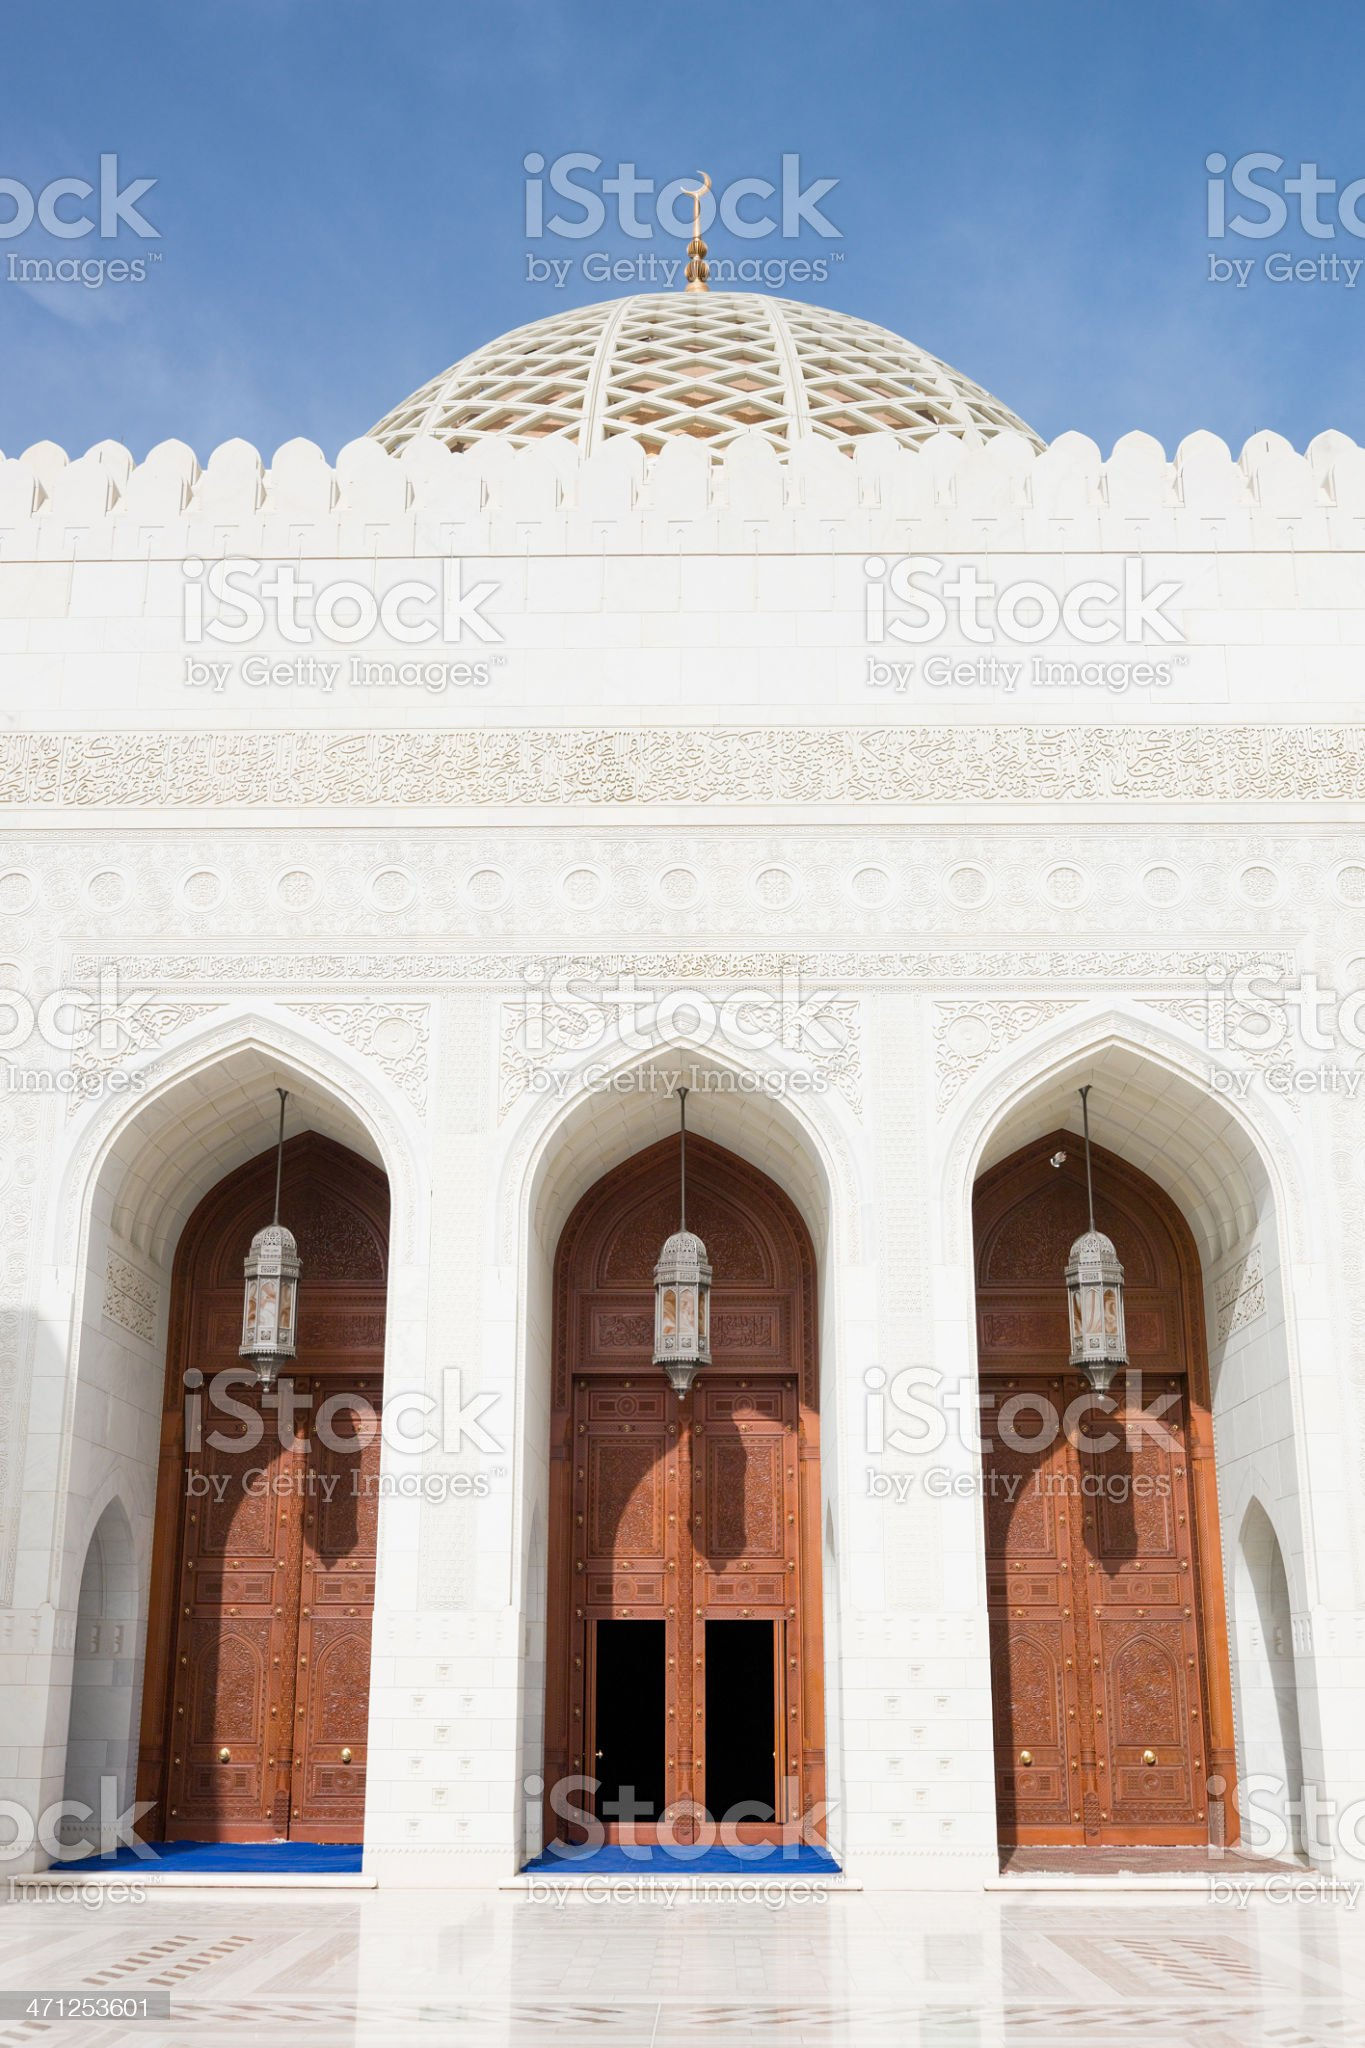 Prayer Hall Entrance Sultan Qaboos Grand Mosque Muscat Oman royalty-free stock photo